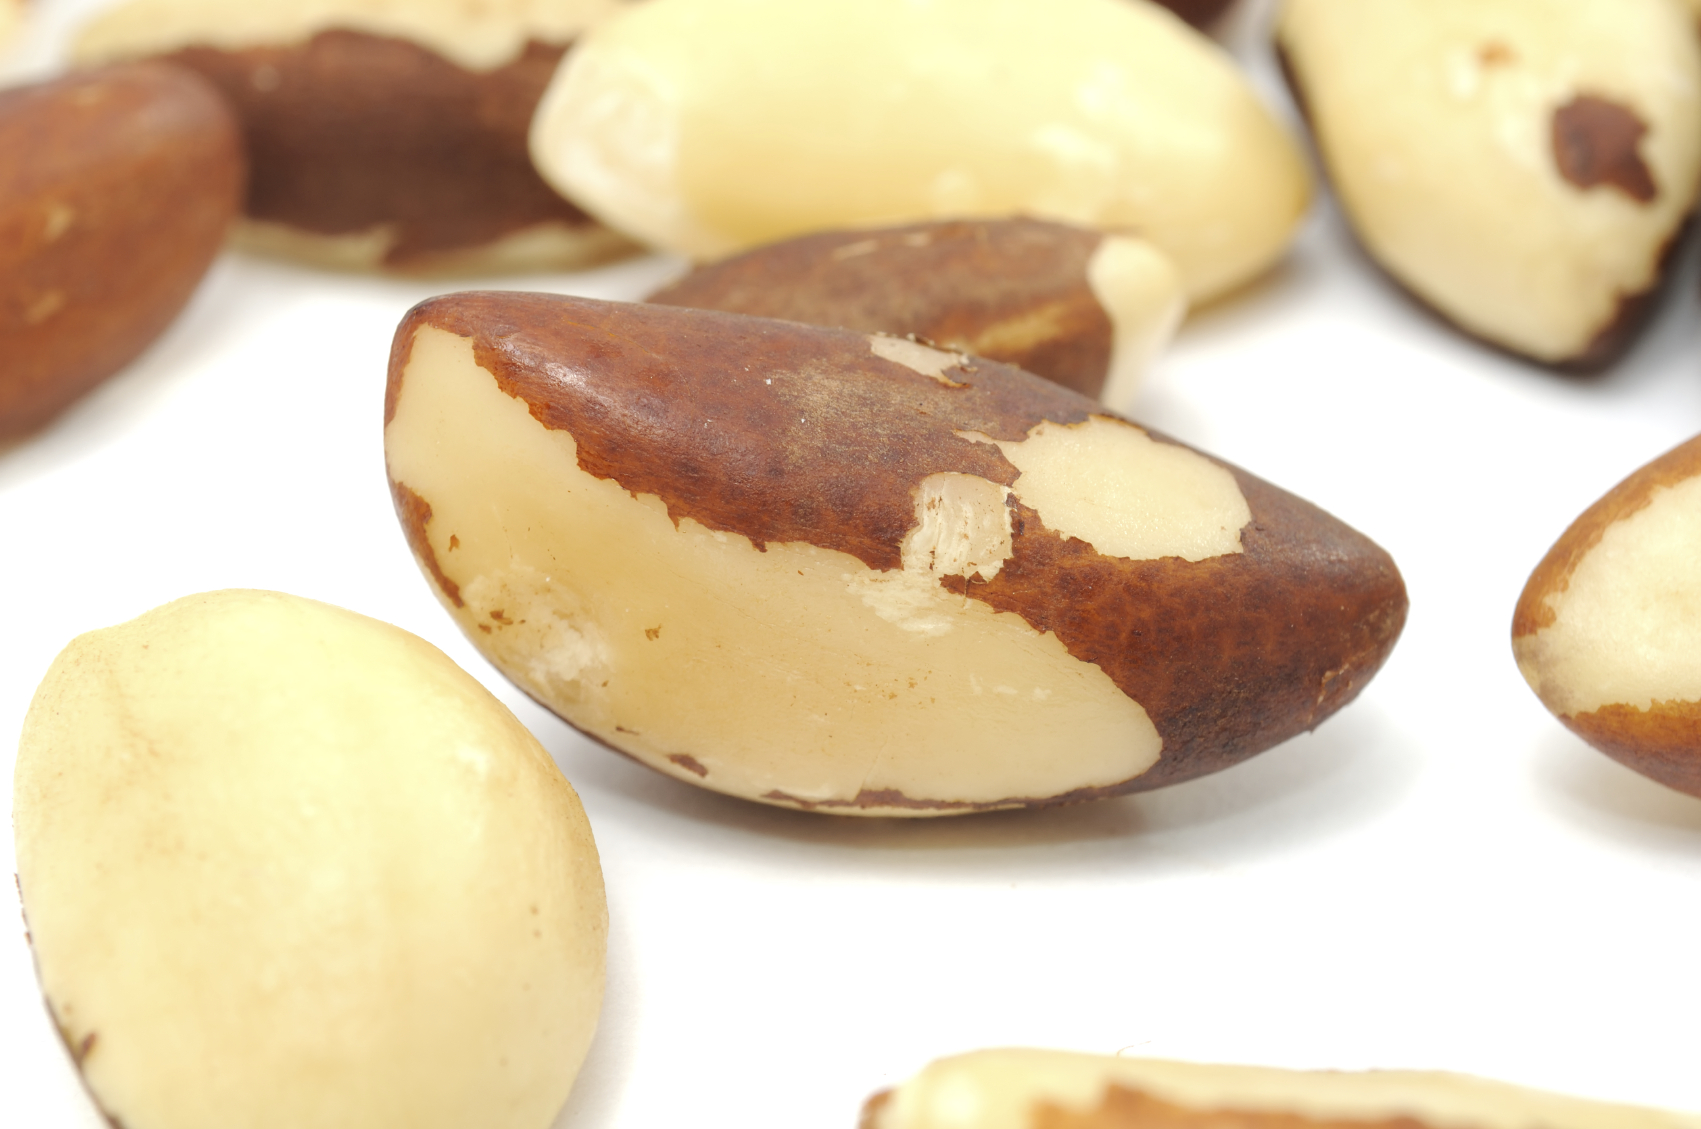 Brazil Nuts plant based diet